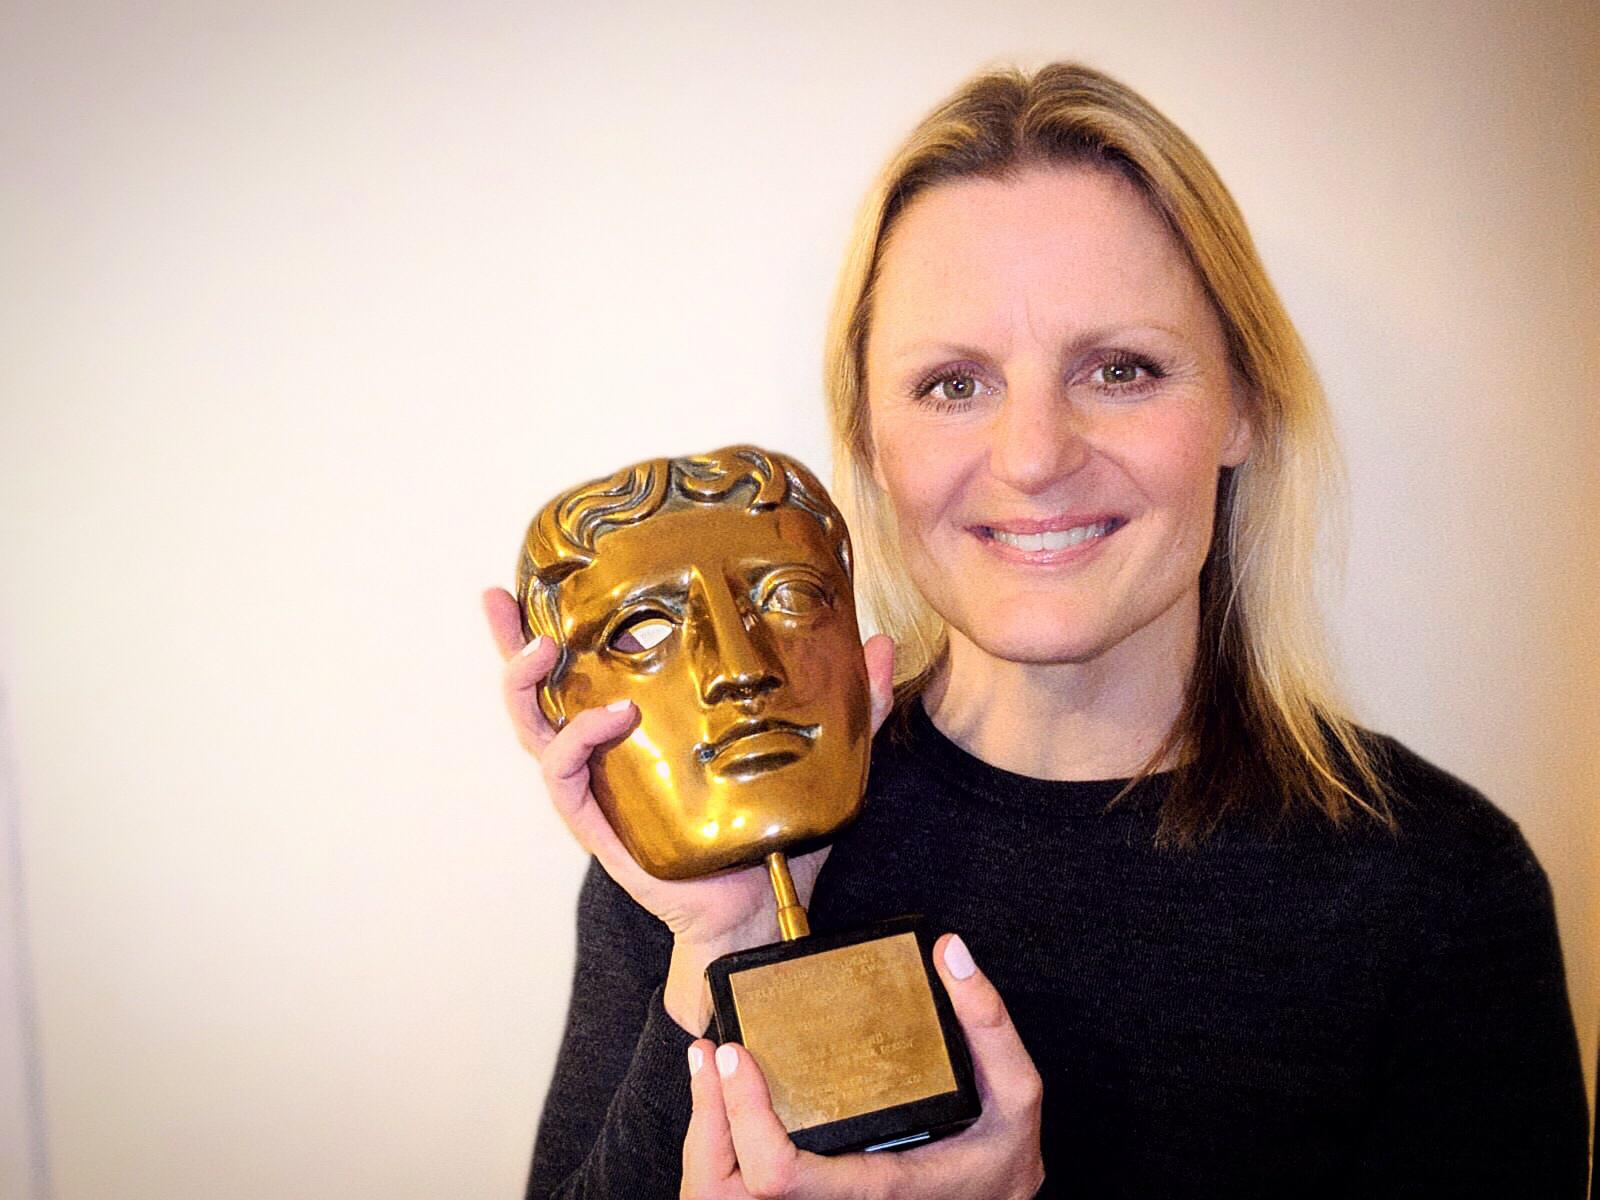 Delamar Academy is now part of the BAFTA Scholarship Programme